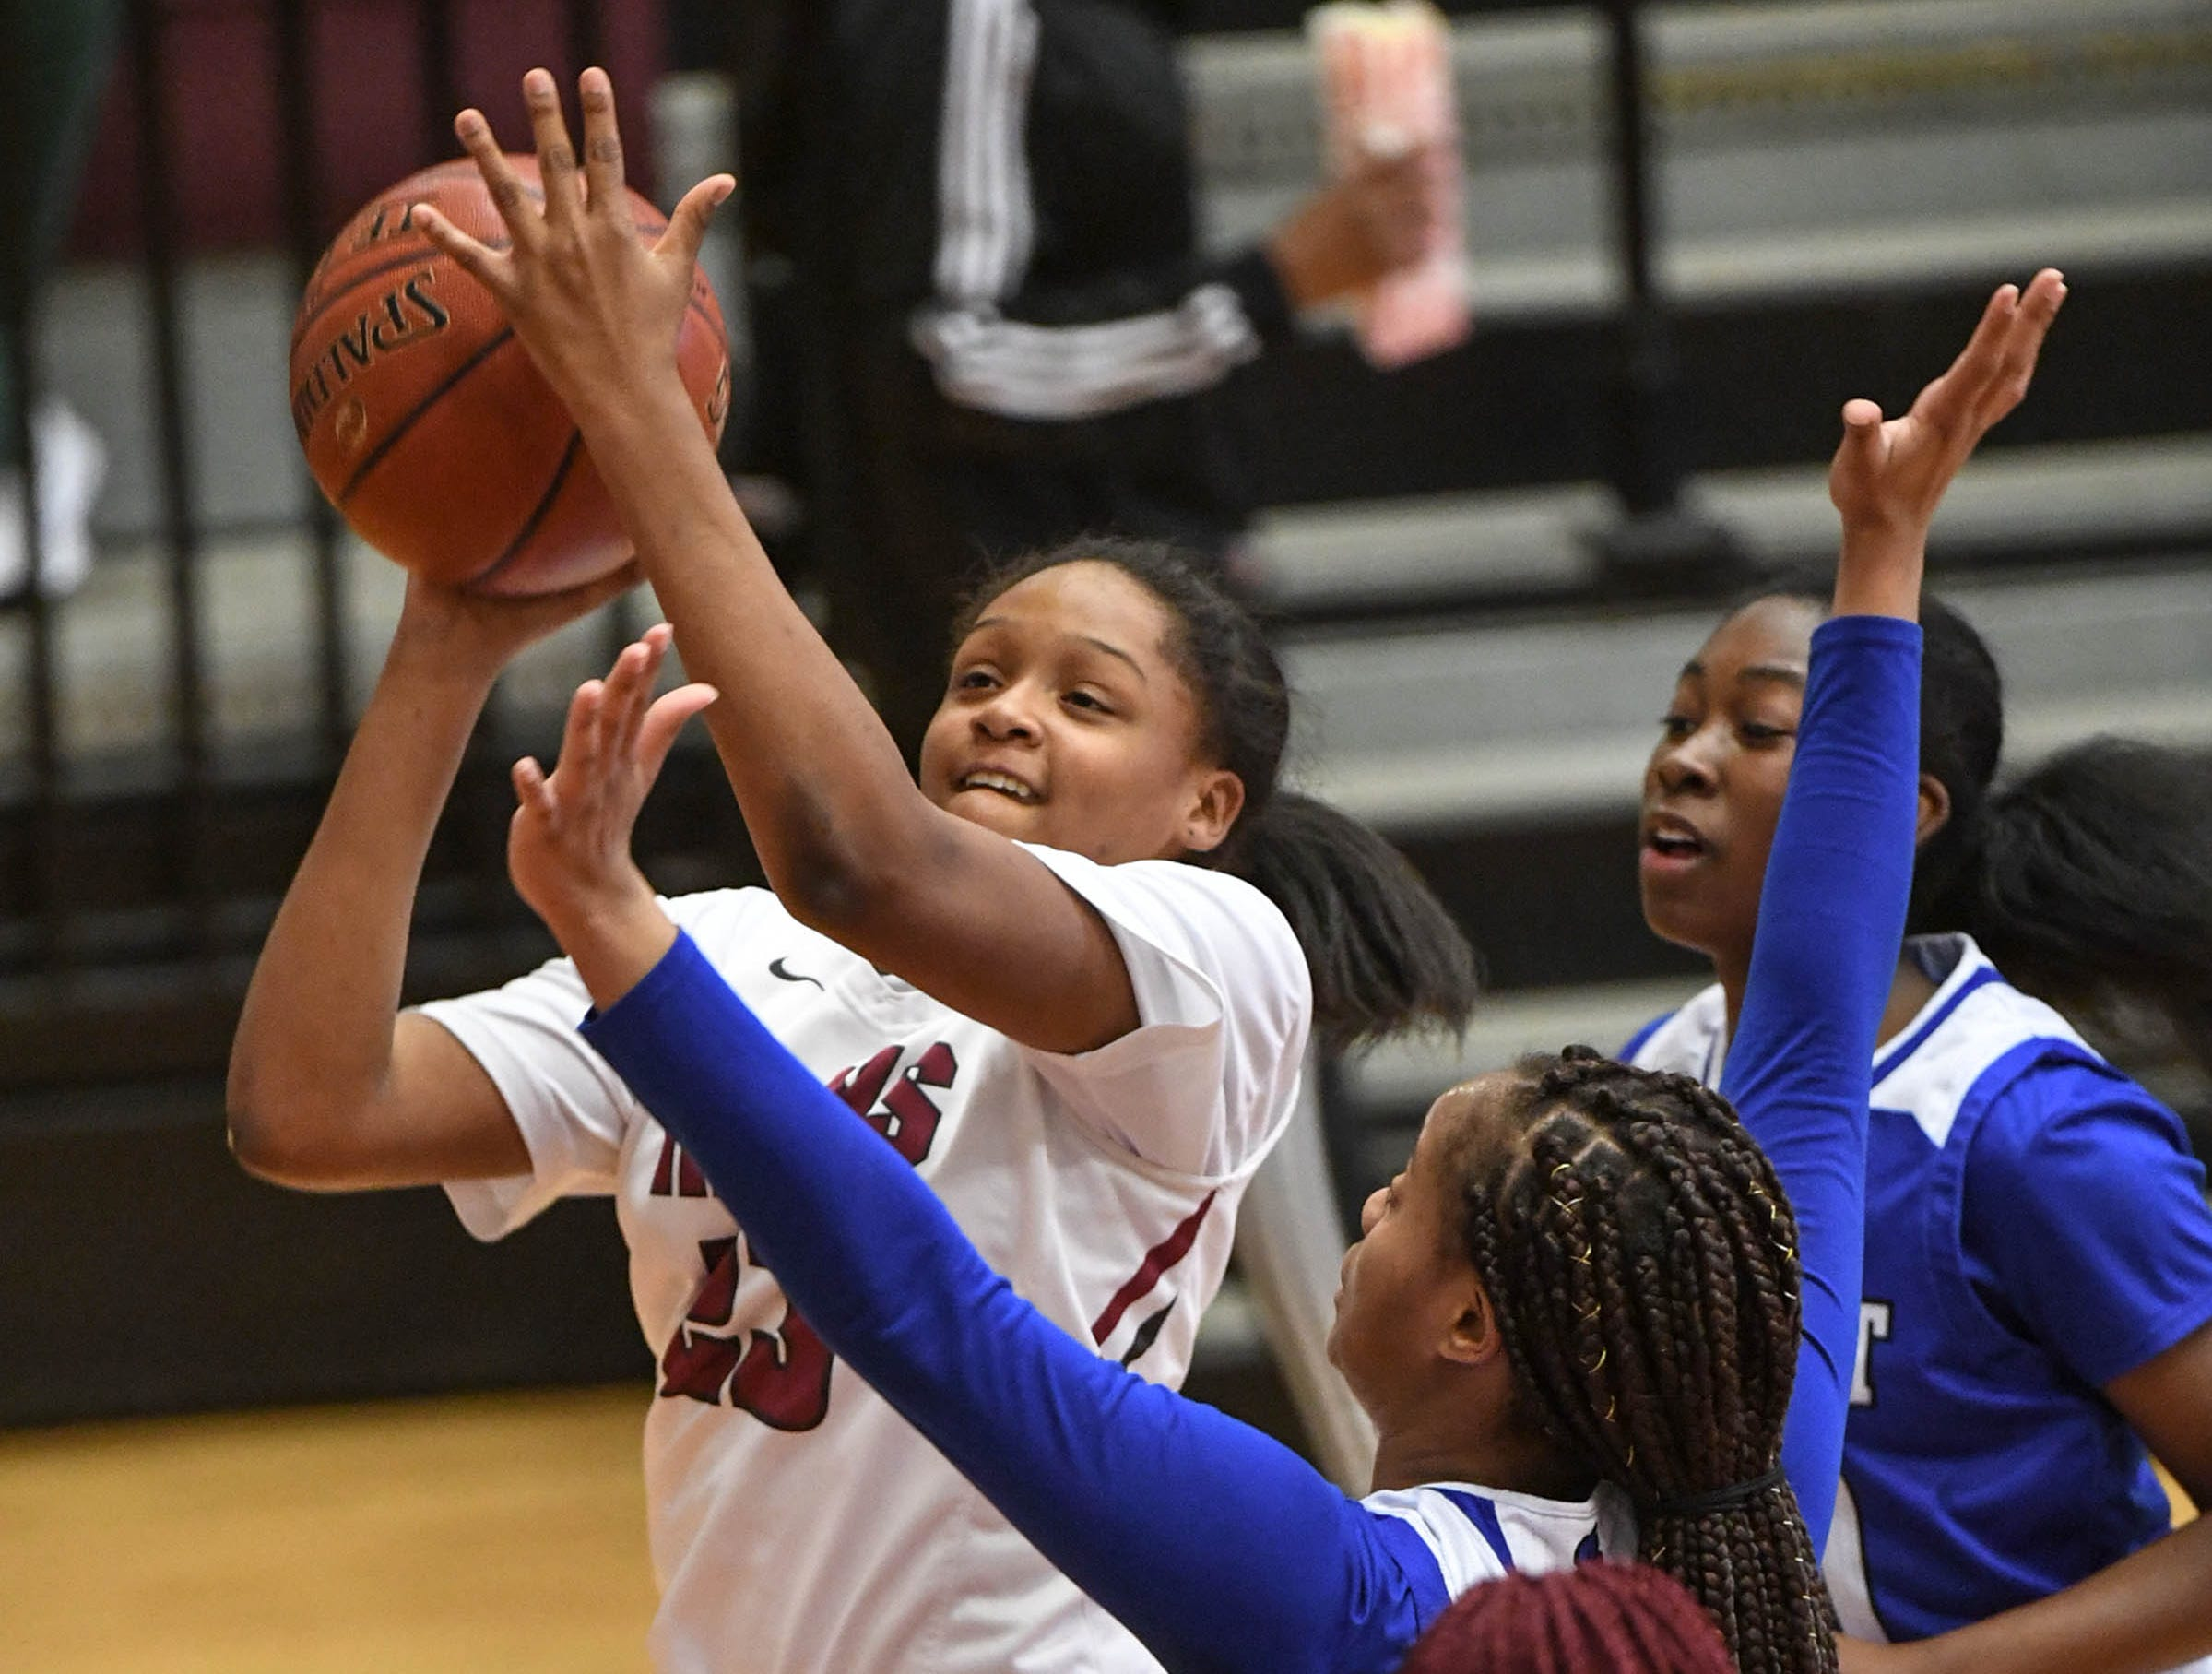 Westside freshman Keazia Hatten(23) shoots near Woodmont junior JaRae Smith(30) during the first quarter at Westside High School in Anderson on Tuesday.